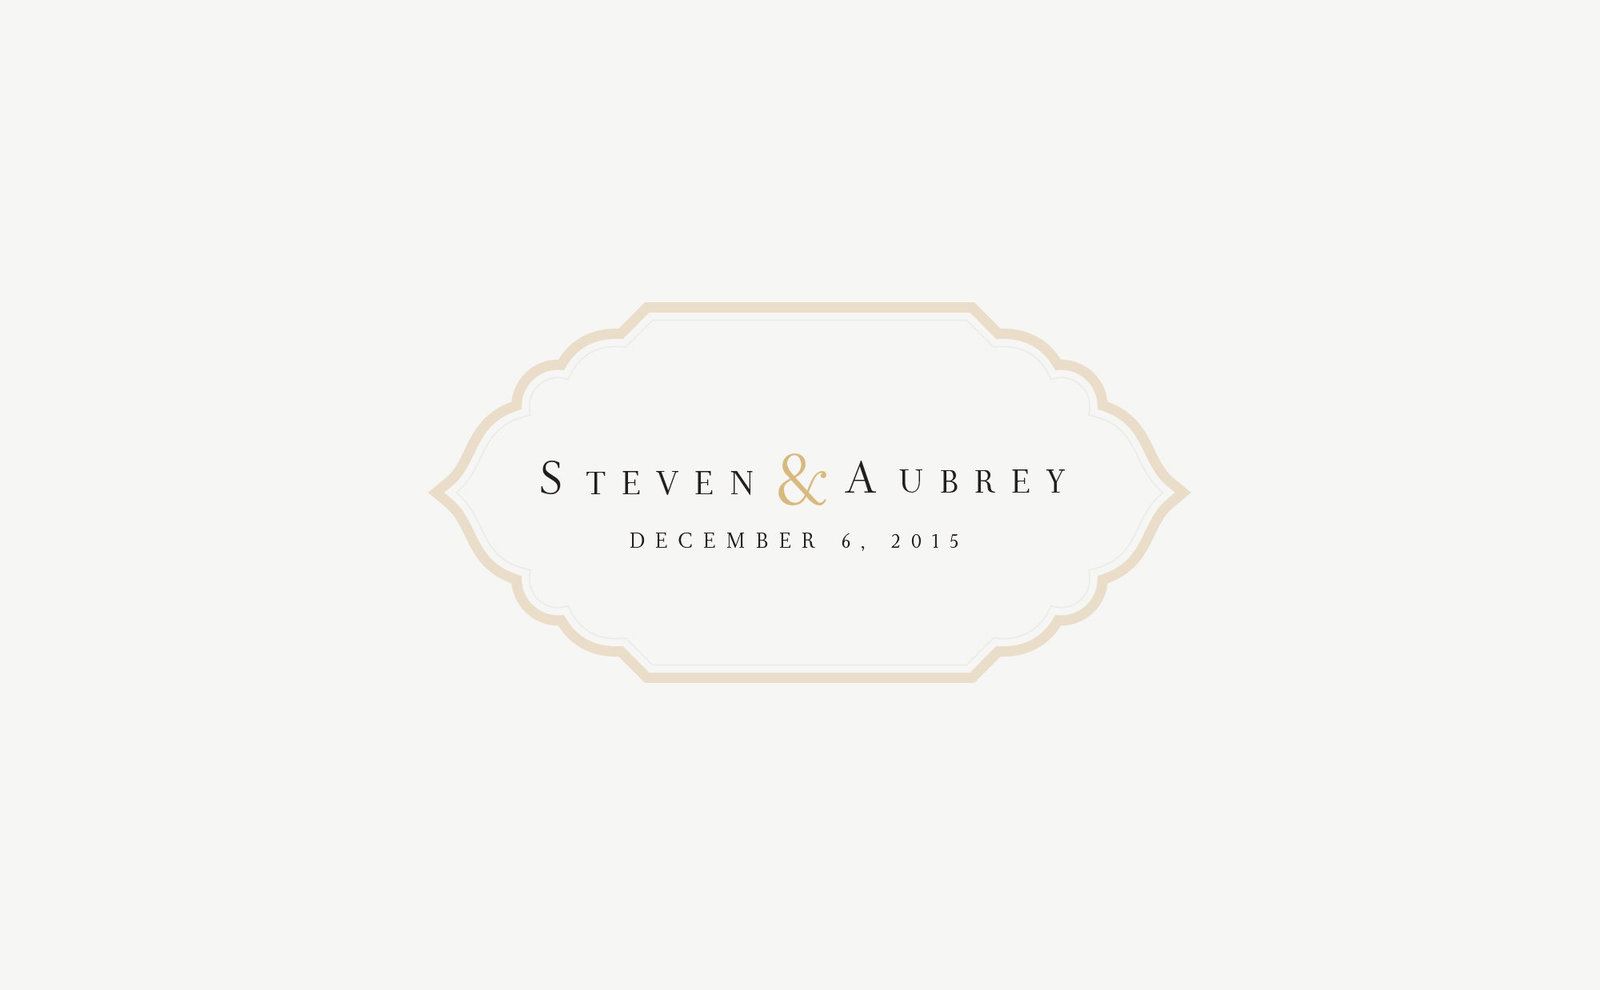 wedding-branding-logo-steven-aubrey-black-gold